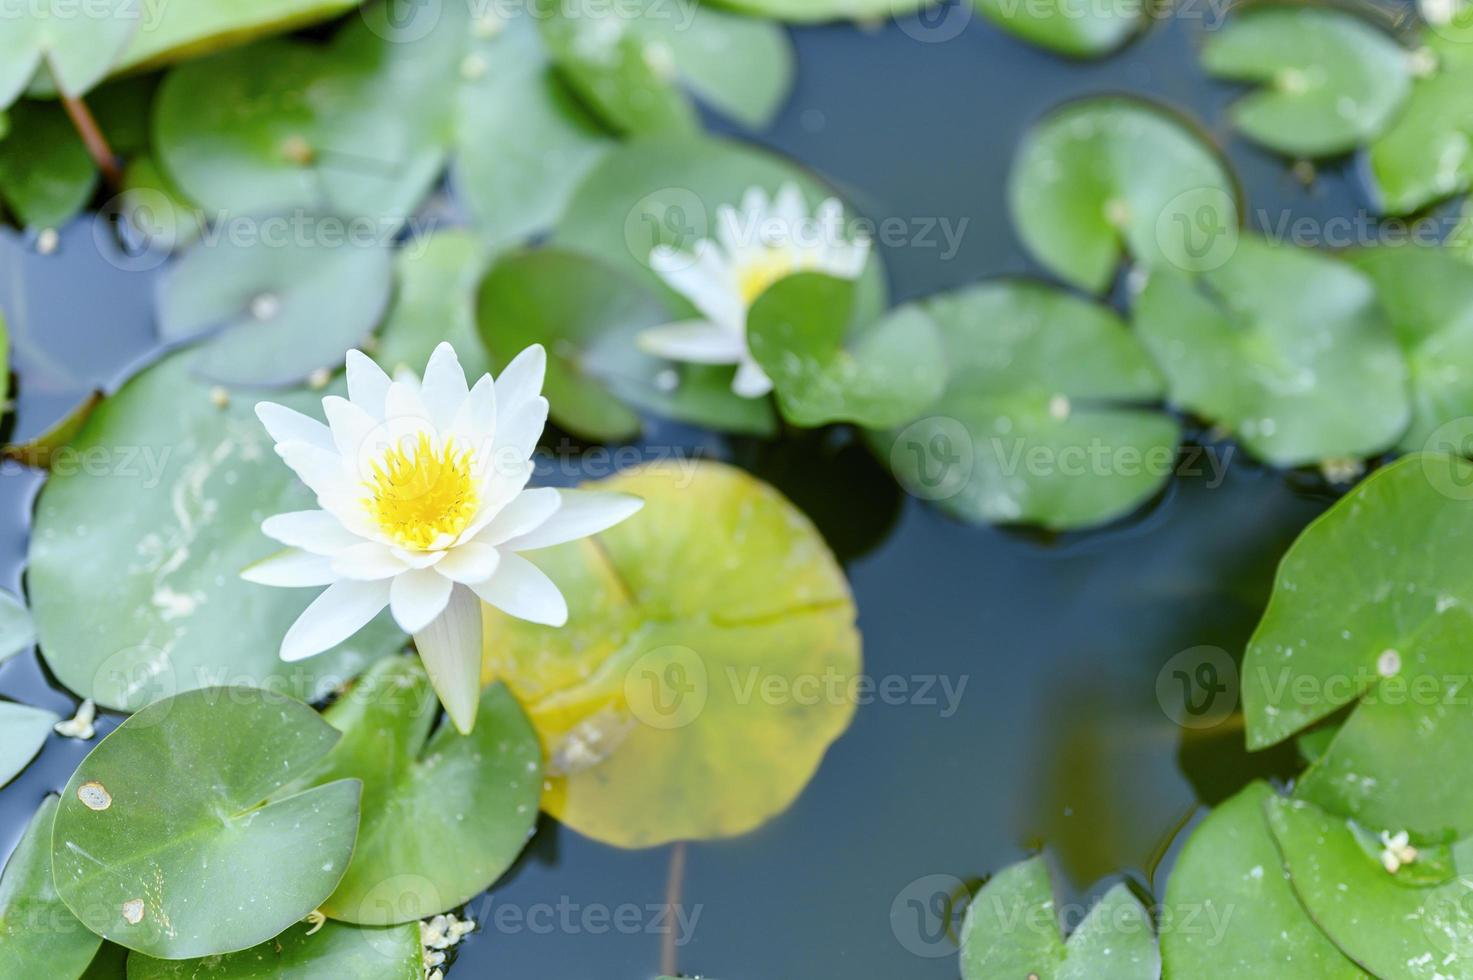 A beautiful white lily blooms among the waterlilies in the pond photo